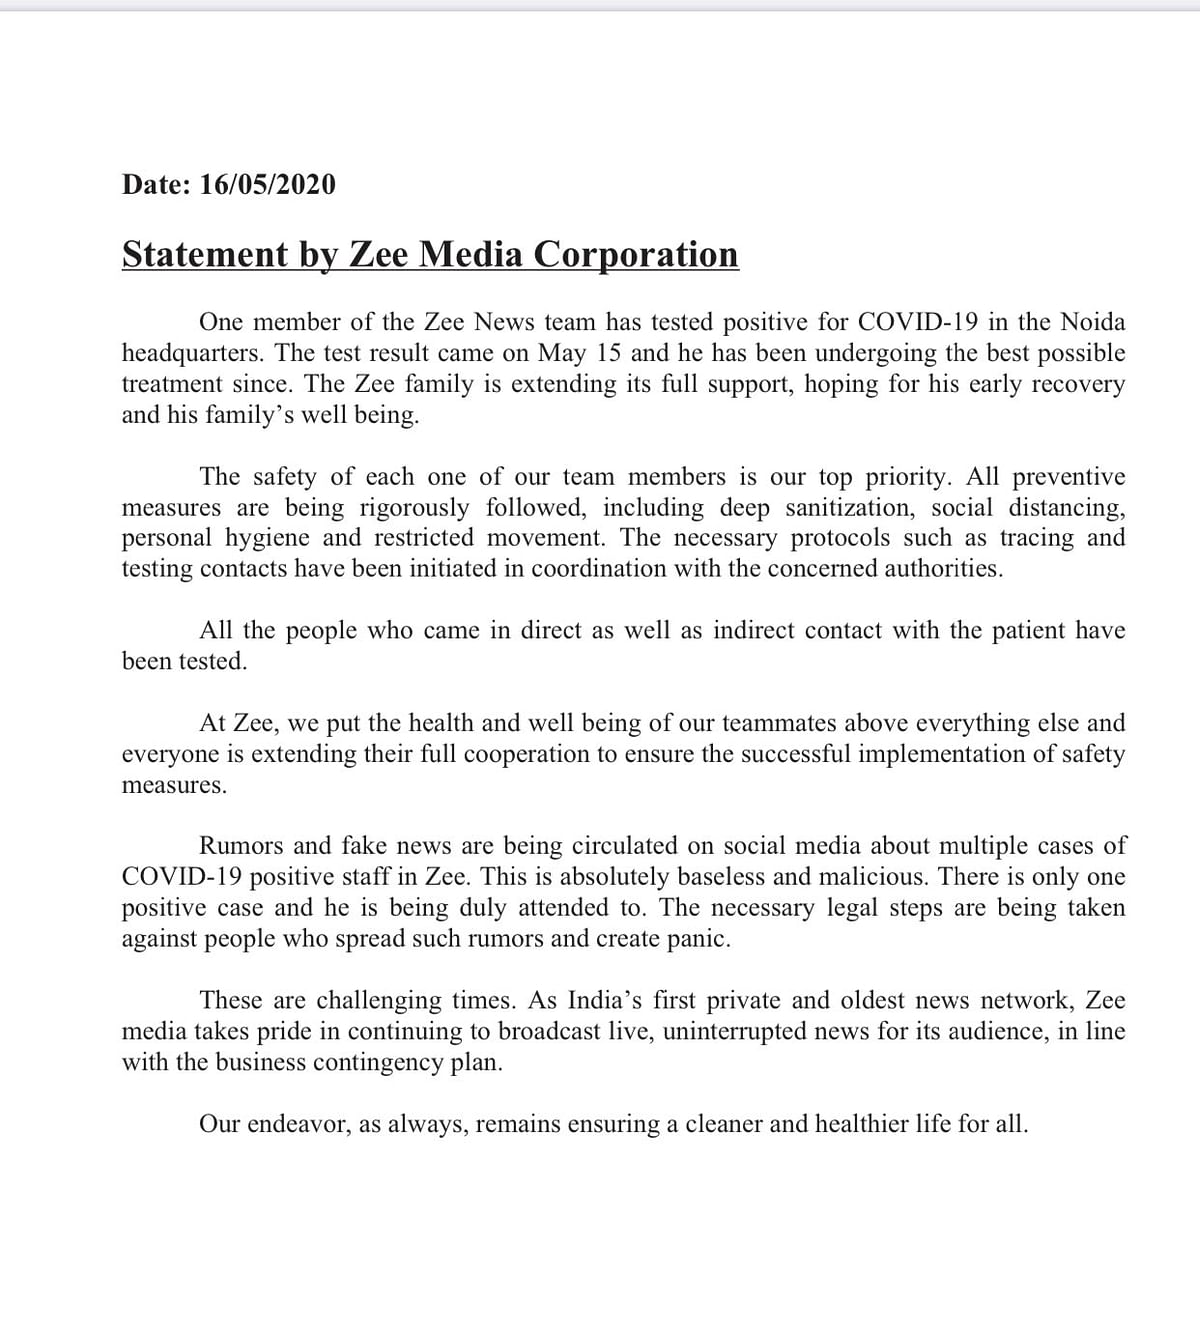 The statement by Zee Media.